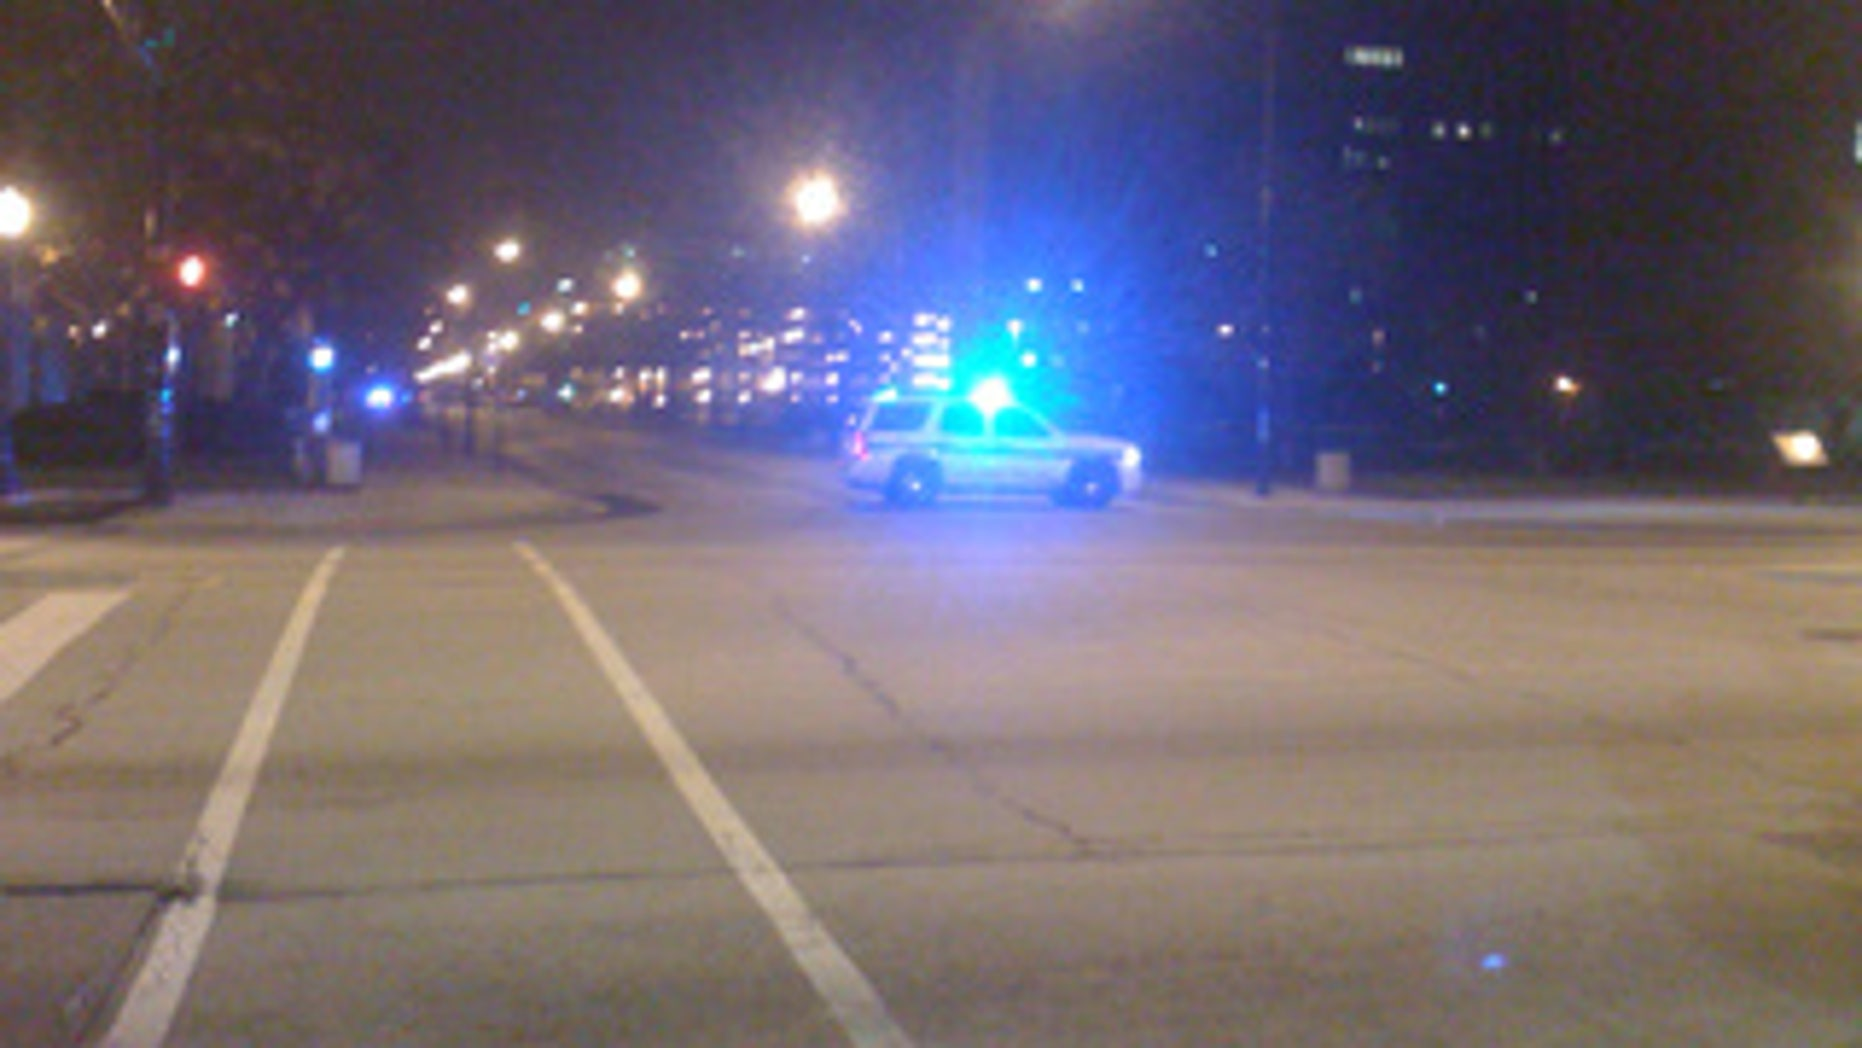 Nov. 25, 2011: Police responded to a barricade situation at University of Illinois Medical Center at Chicago after an employee allegedly shot and killed his ex-wife in a hospital parking garage.